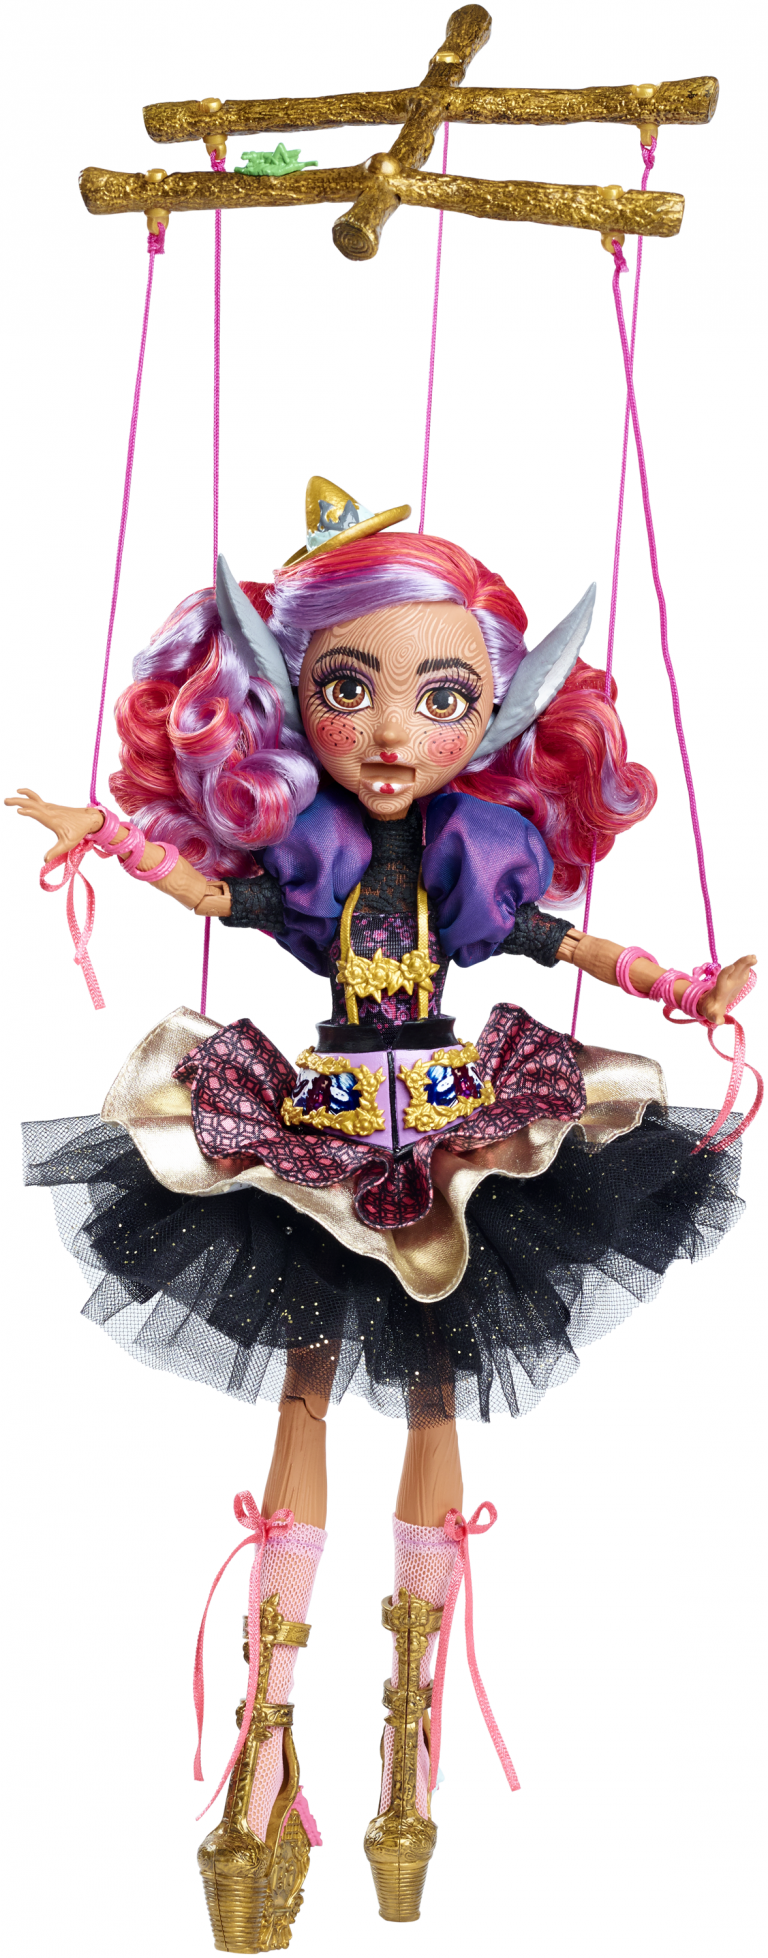 2016 Sdcc Exclusive Ever After High Cedar Wood Doll In